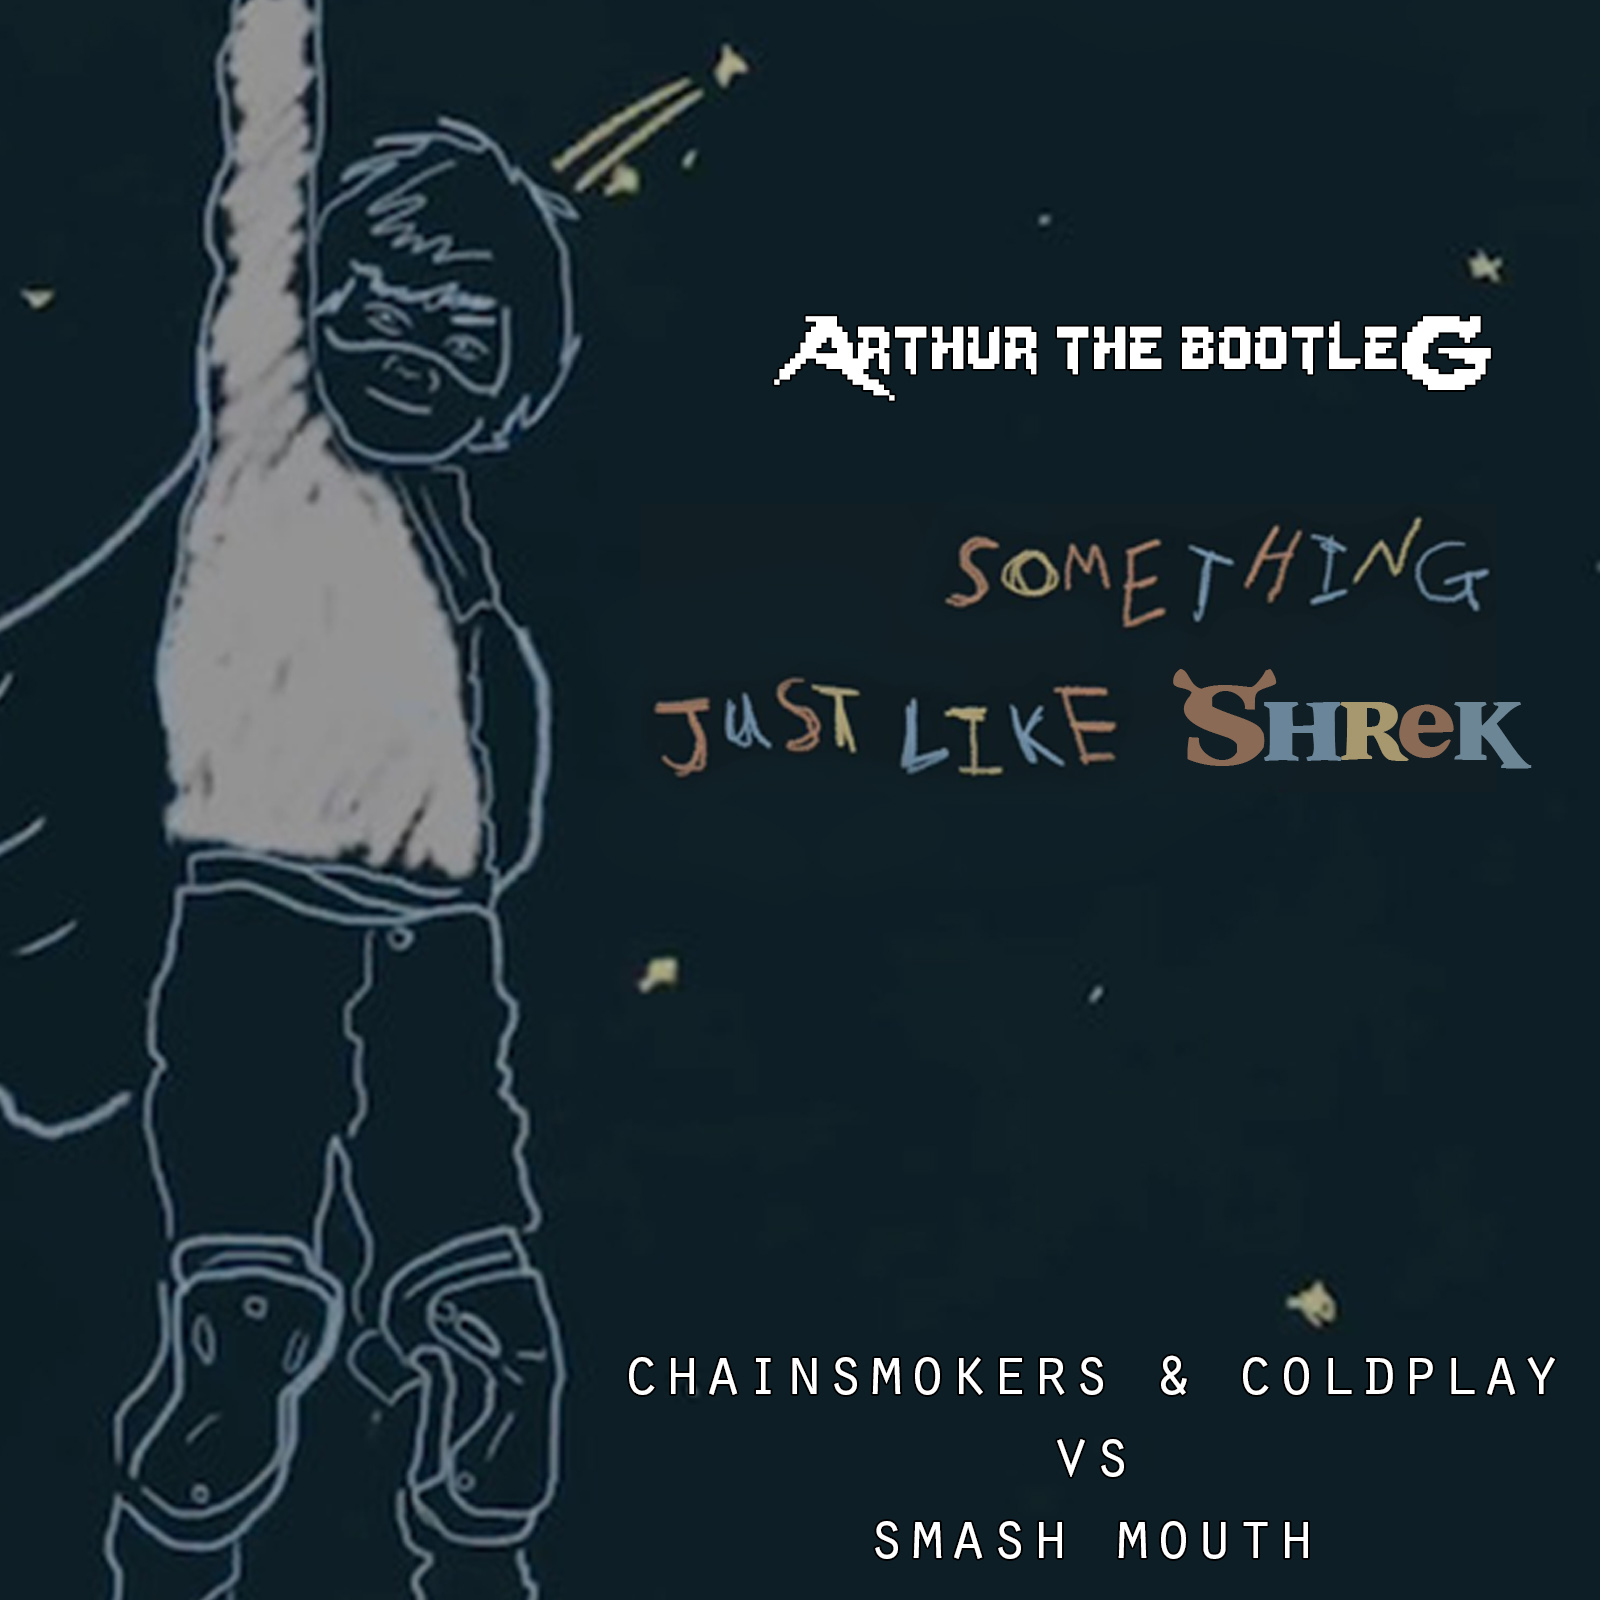 Something Just Like Shrek [Smash Mouth vs Chainsmokers & Coldplay]